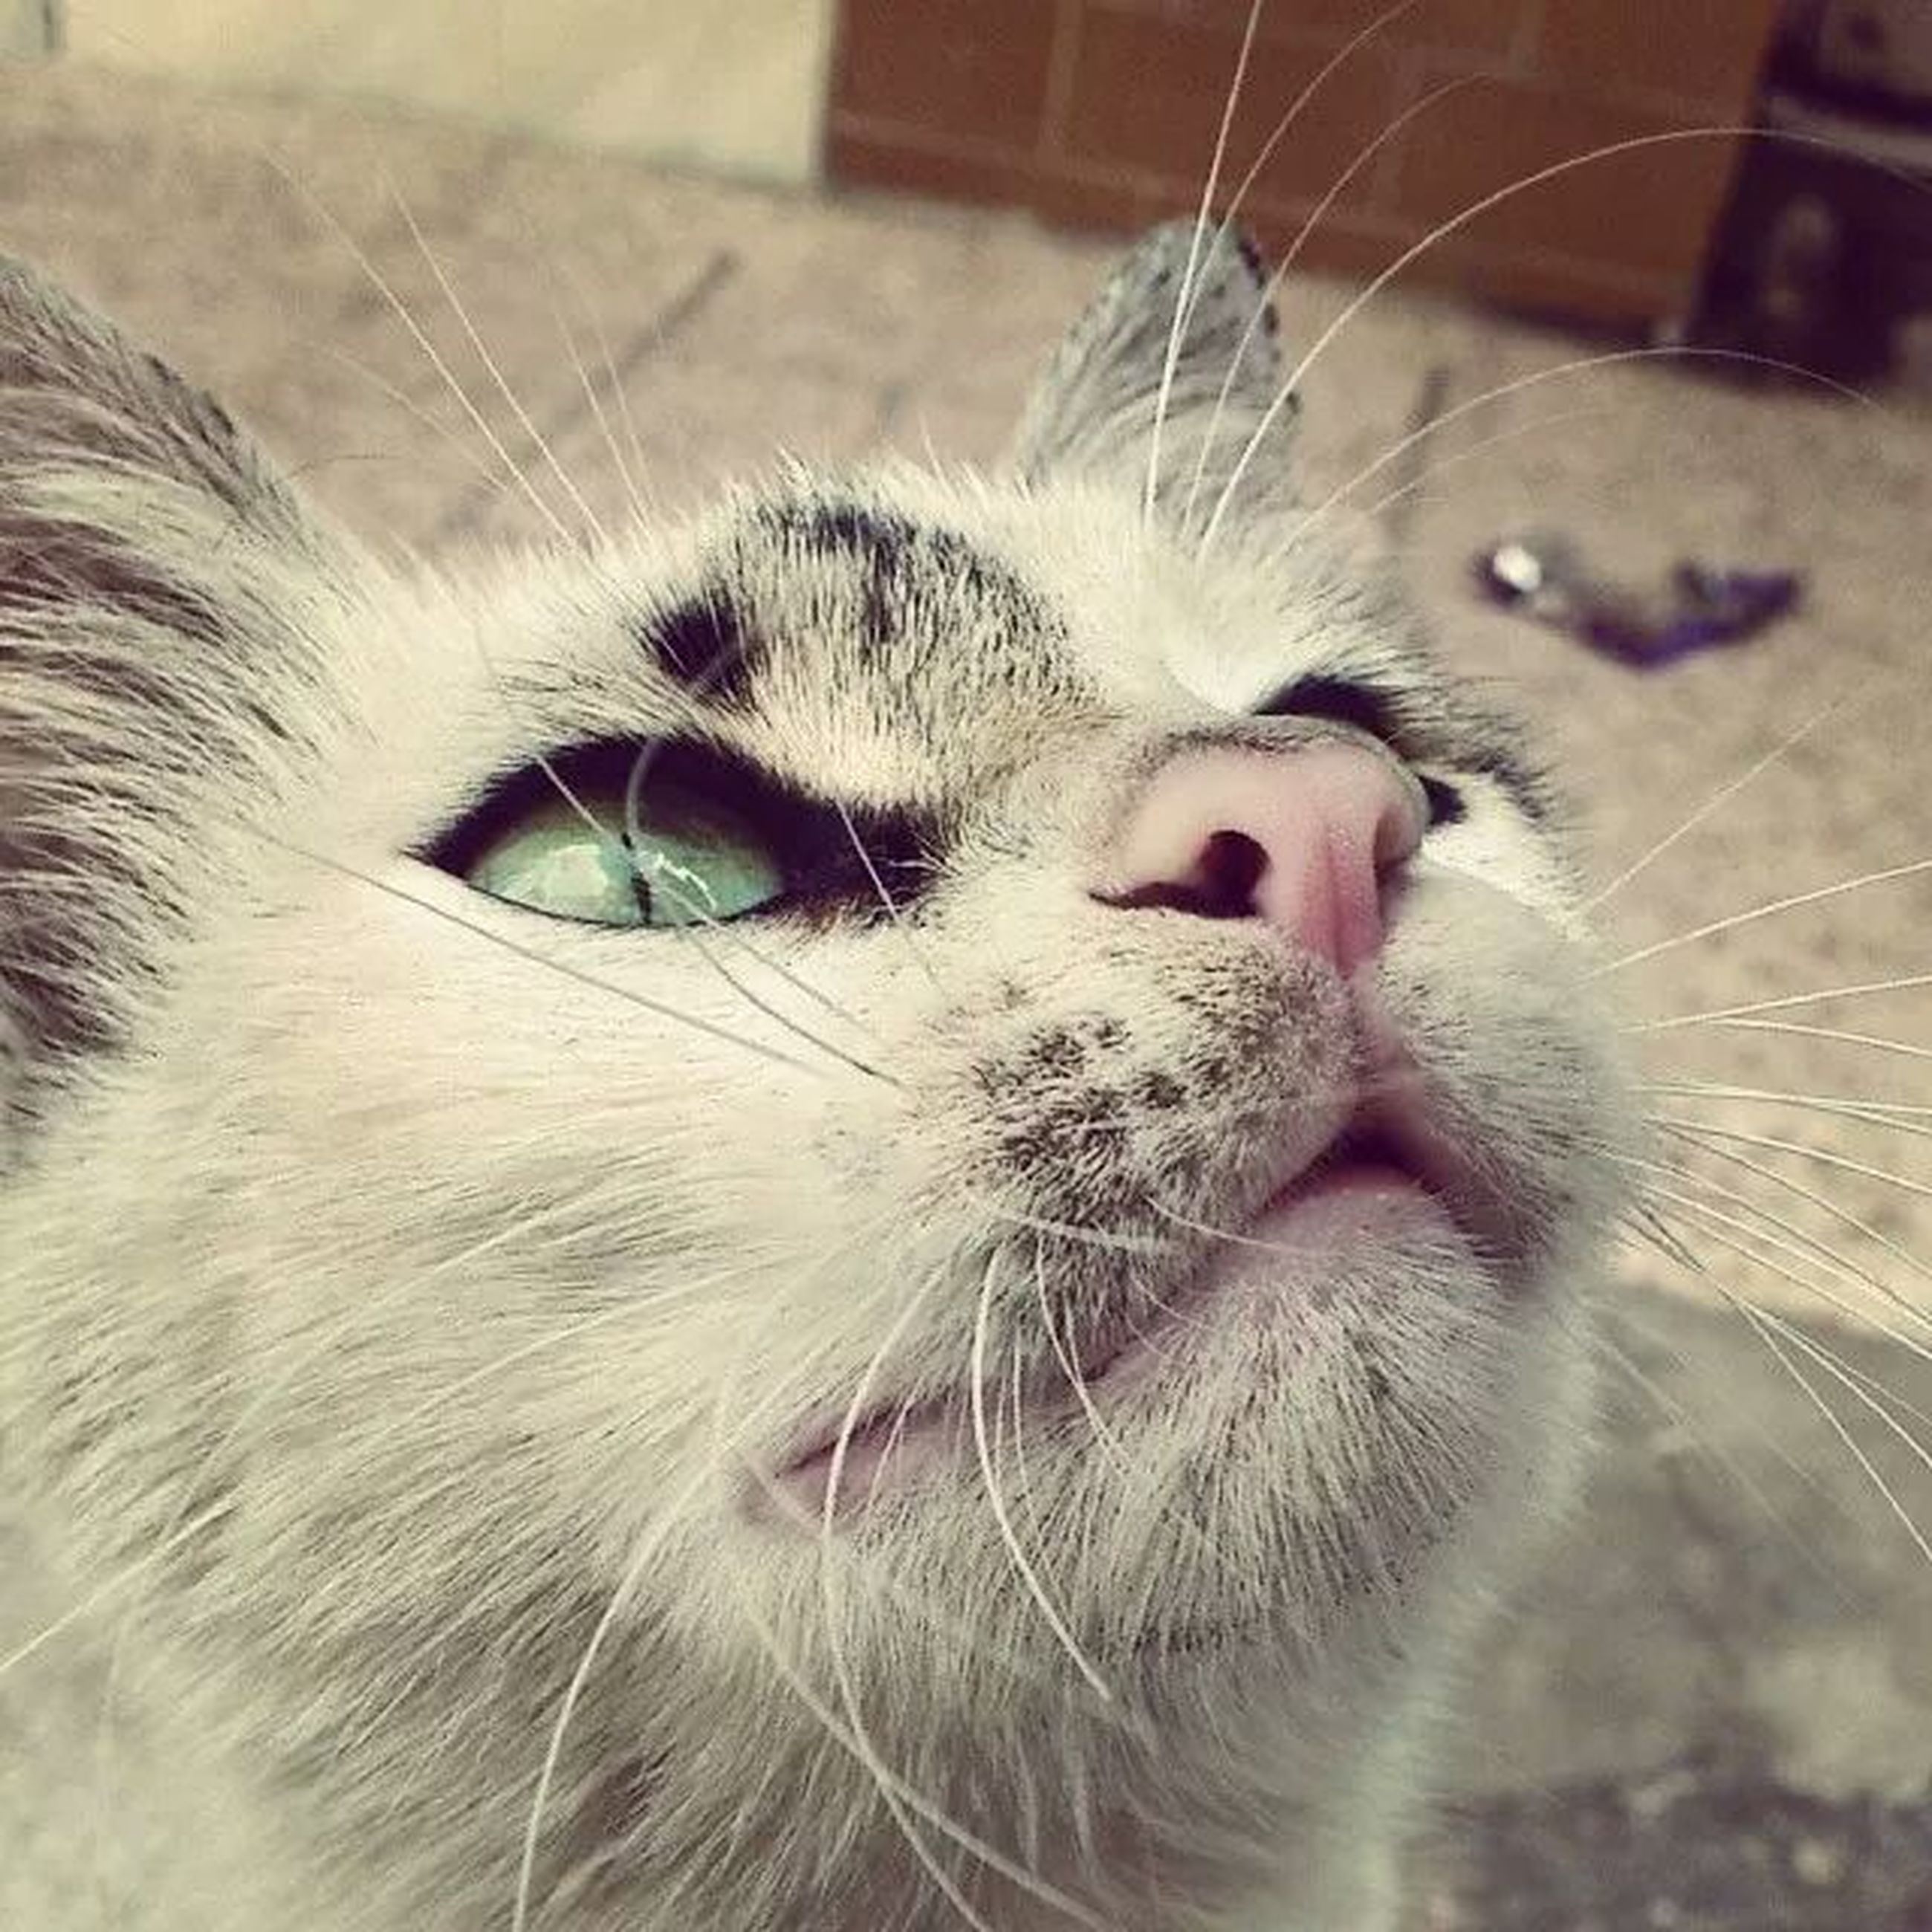 one animal, animal themes, domestic animals, pets, mammal, domestic cat, cat, feline, whisker, animal head, close-up, animal body part, focus on foreground, portrait, looking at camera, indoors, animal eye, animal hair, snout